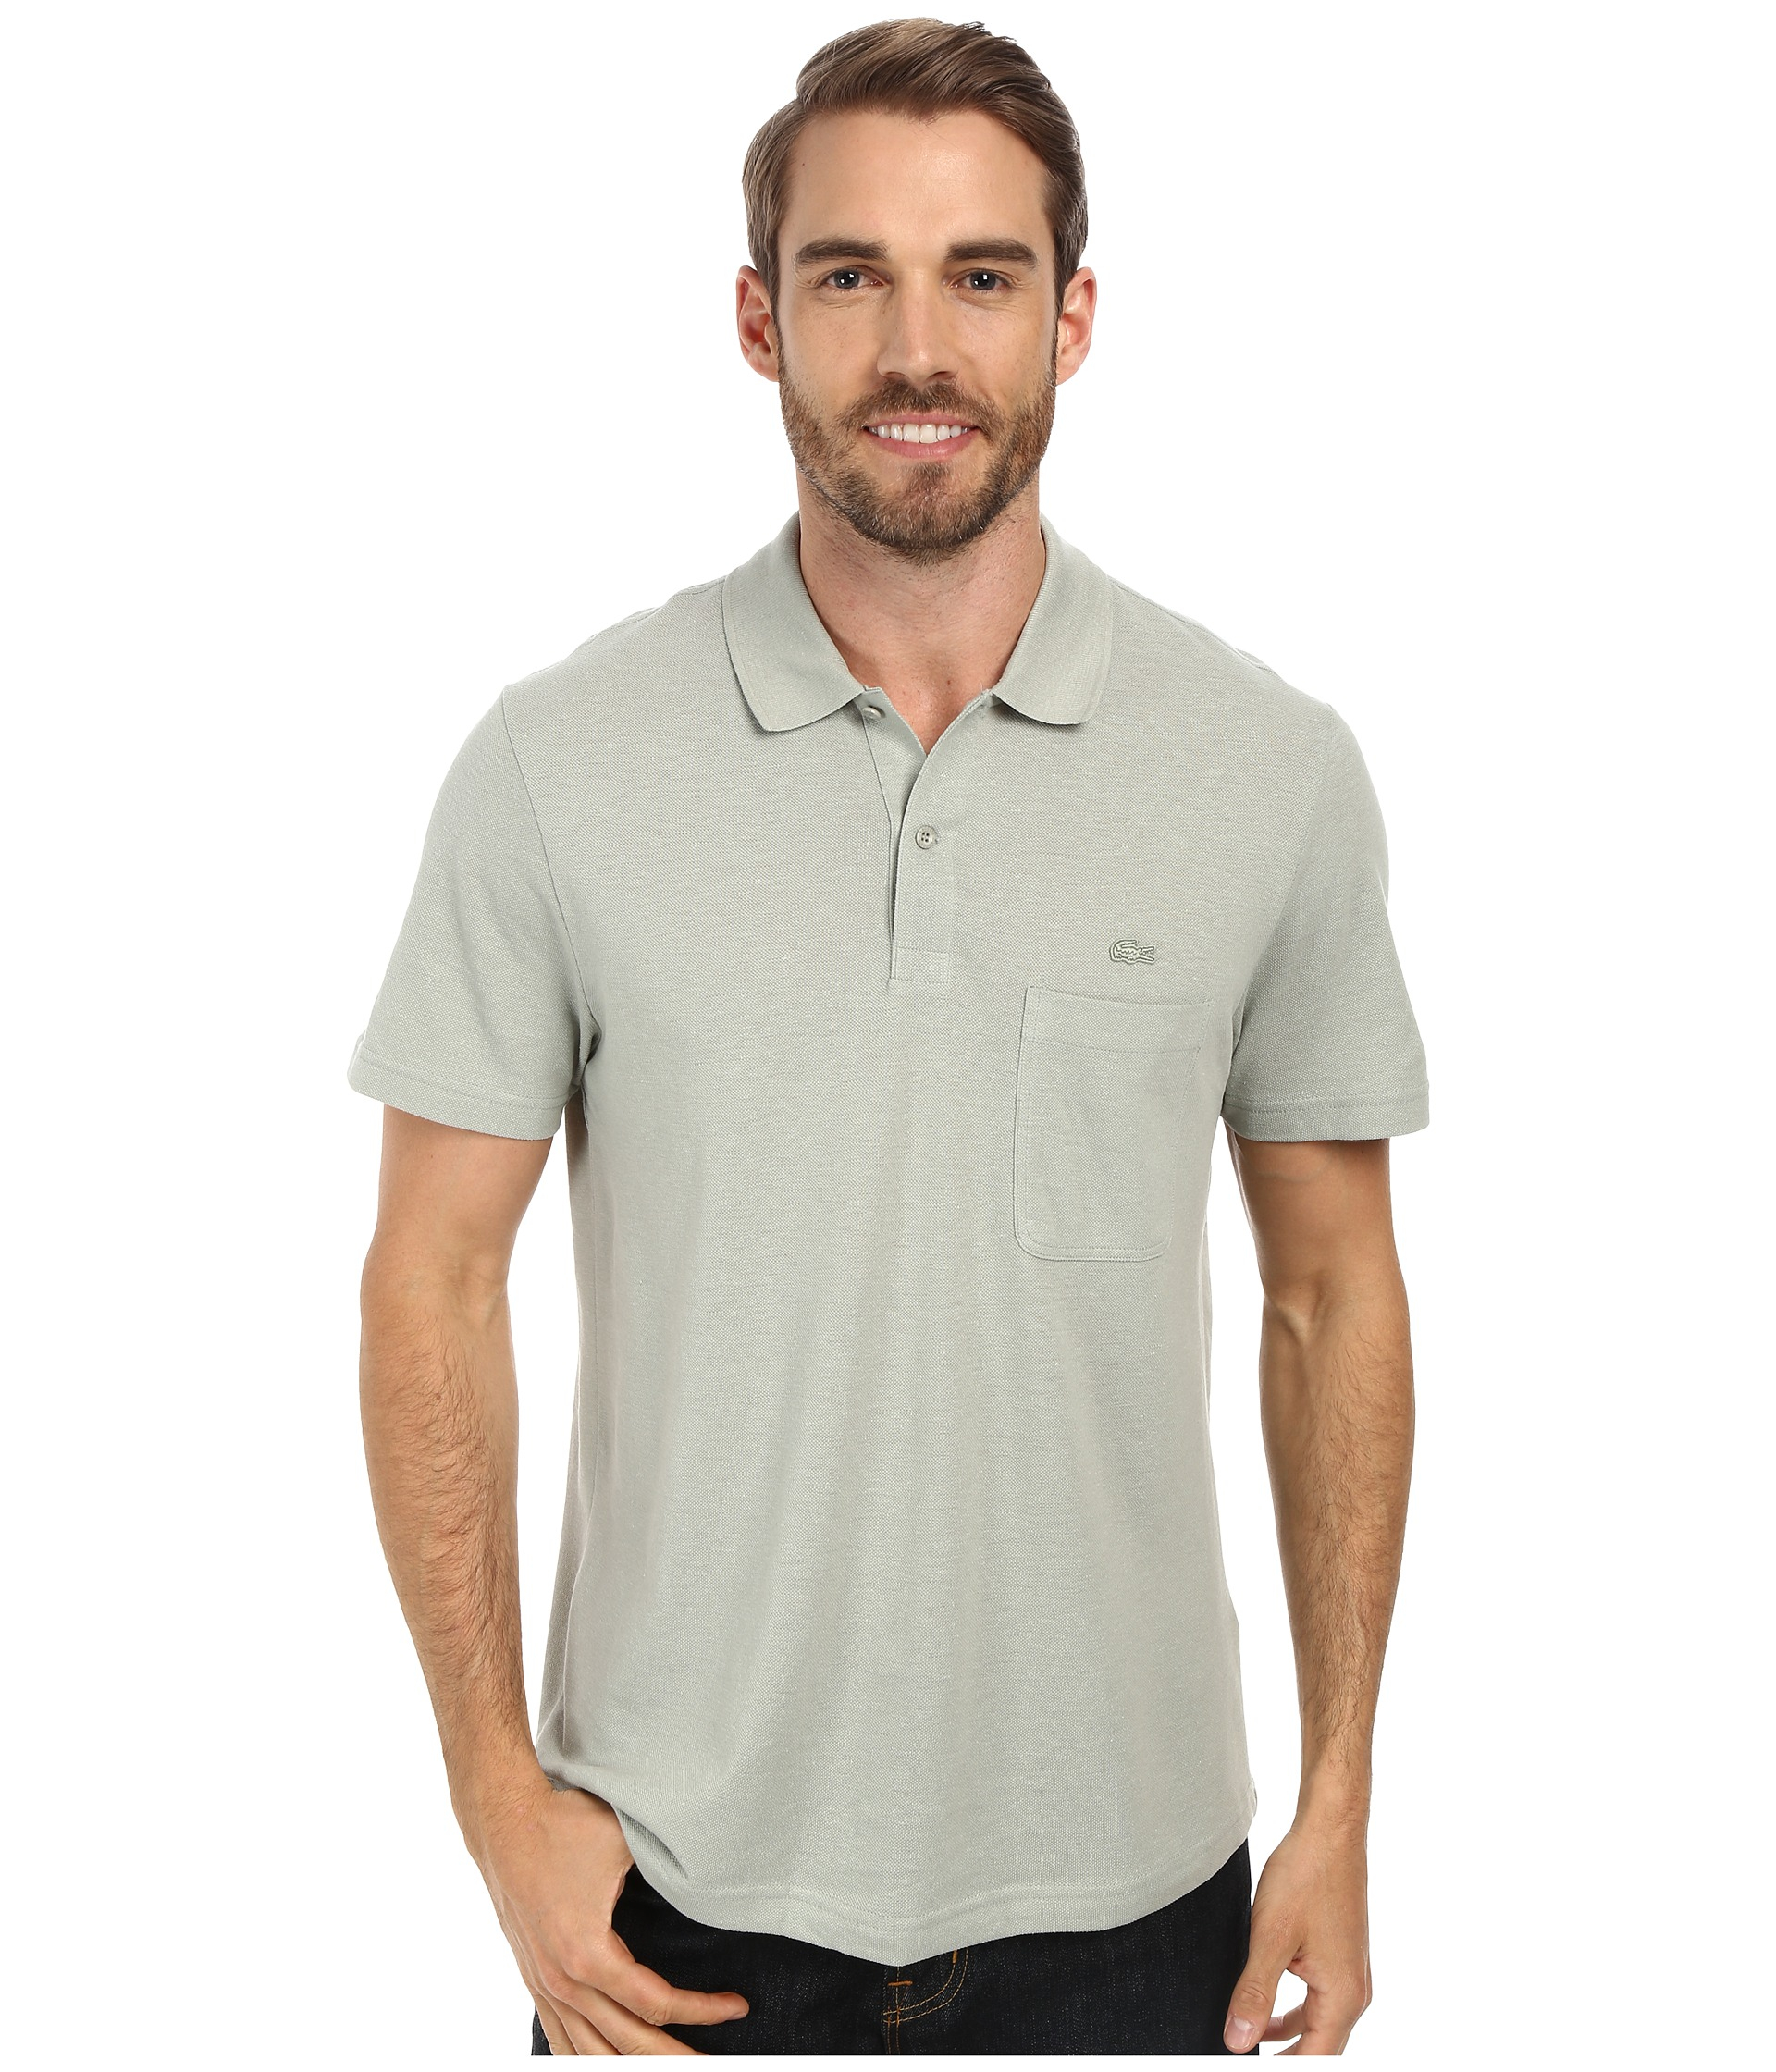 Lacoste Cotton Linen Polo With Pocket In Green For Men Lyst